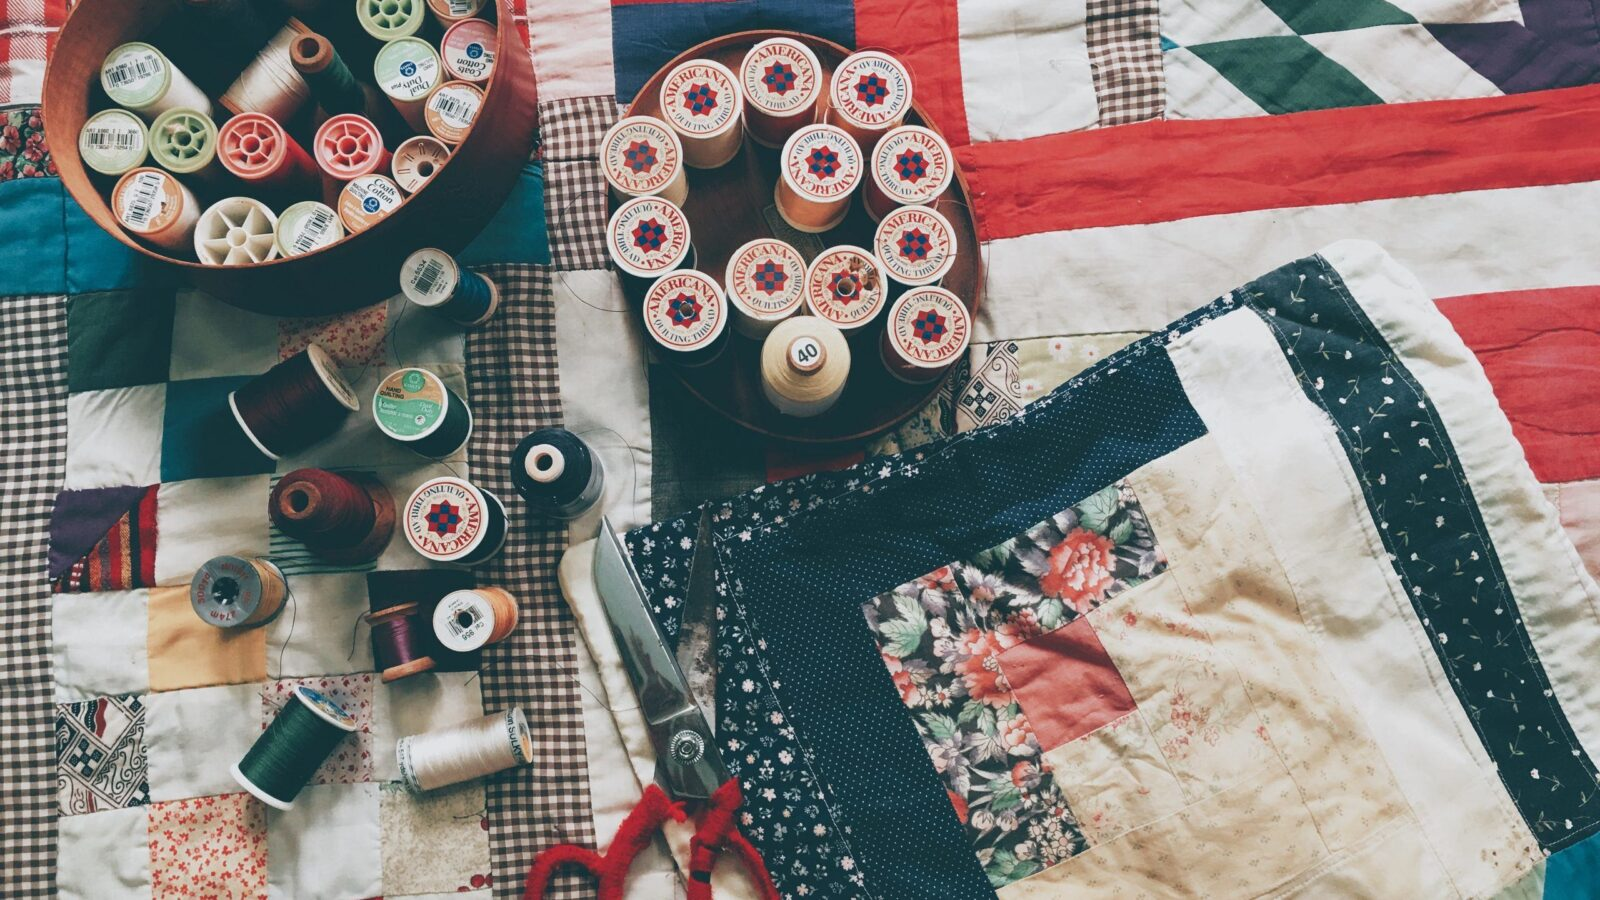 Sew good: Louise gets crafty – Autism Awareness Week